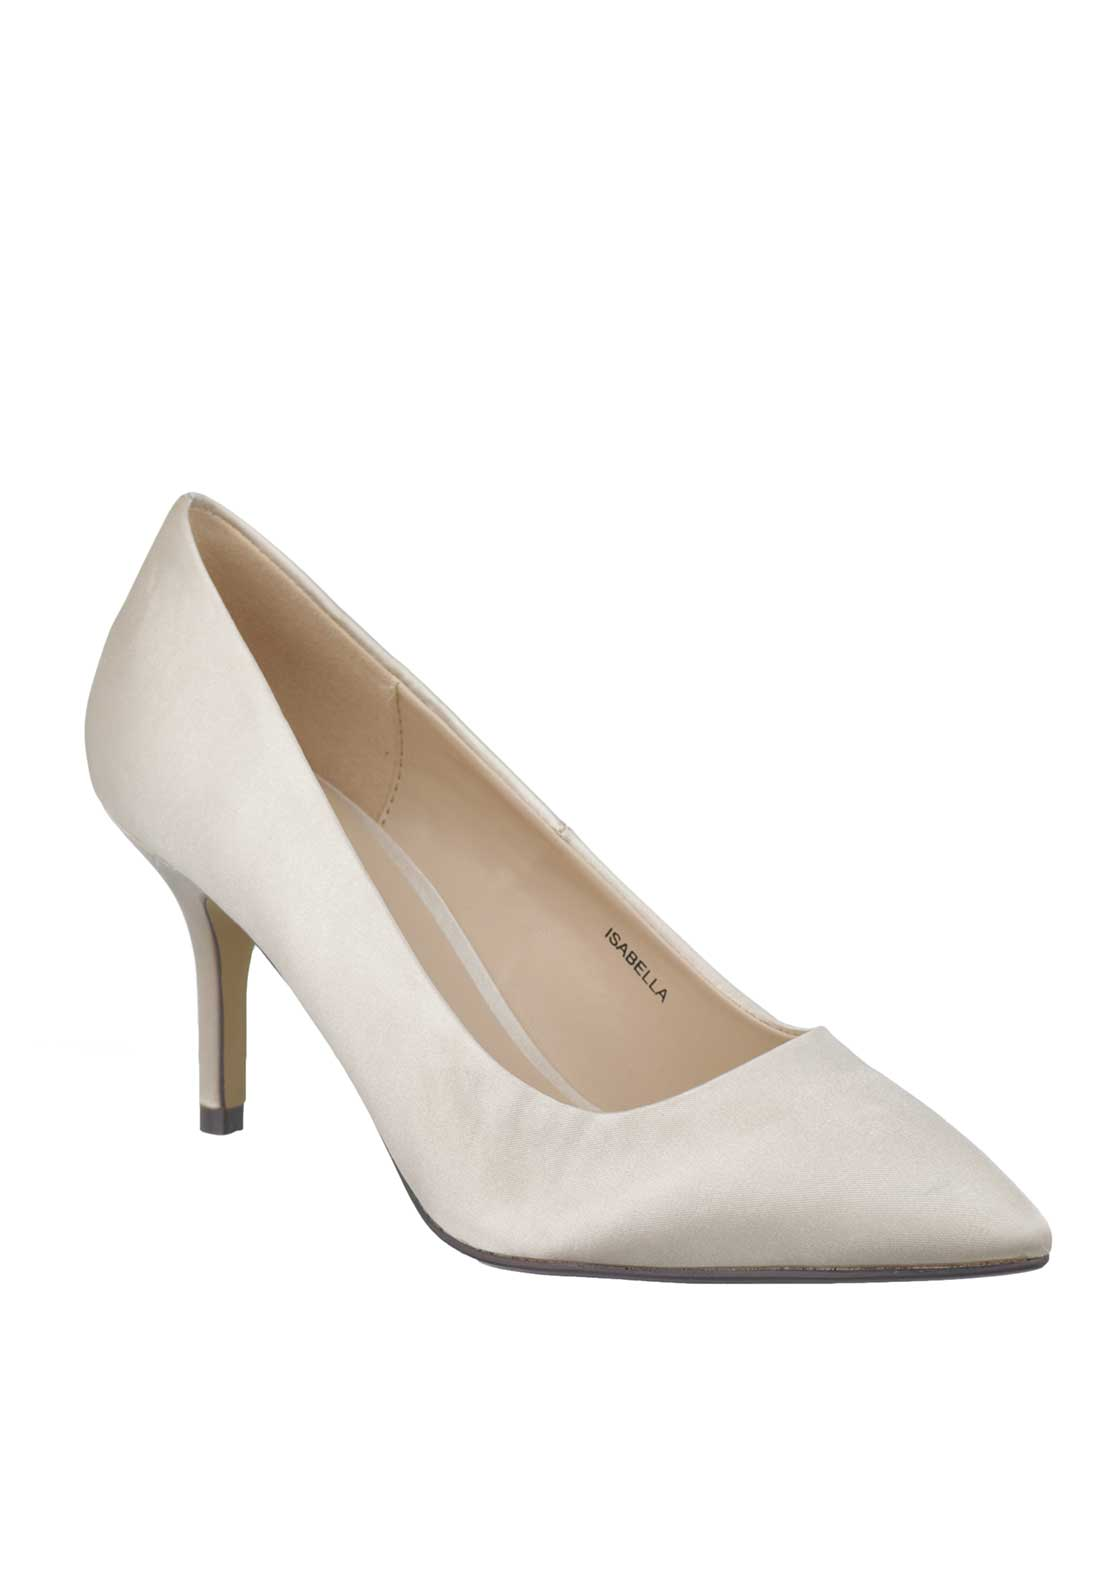 Lunar Isabella Satin Pointed Toe Court Shoes, Nude